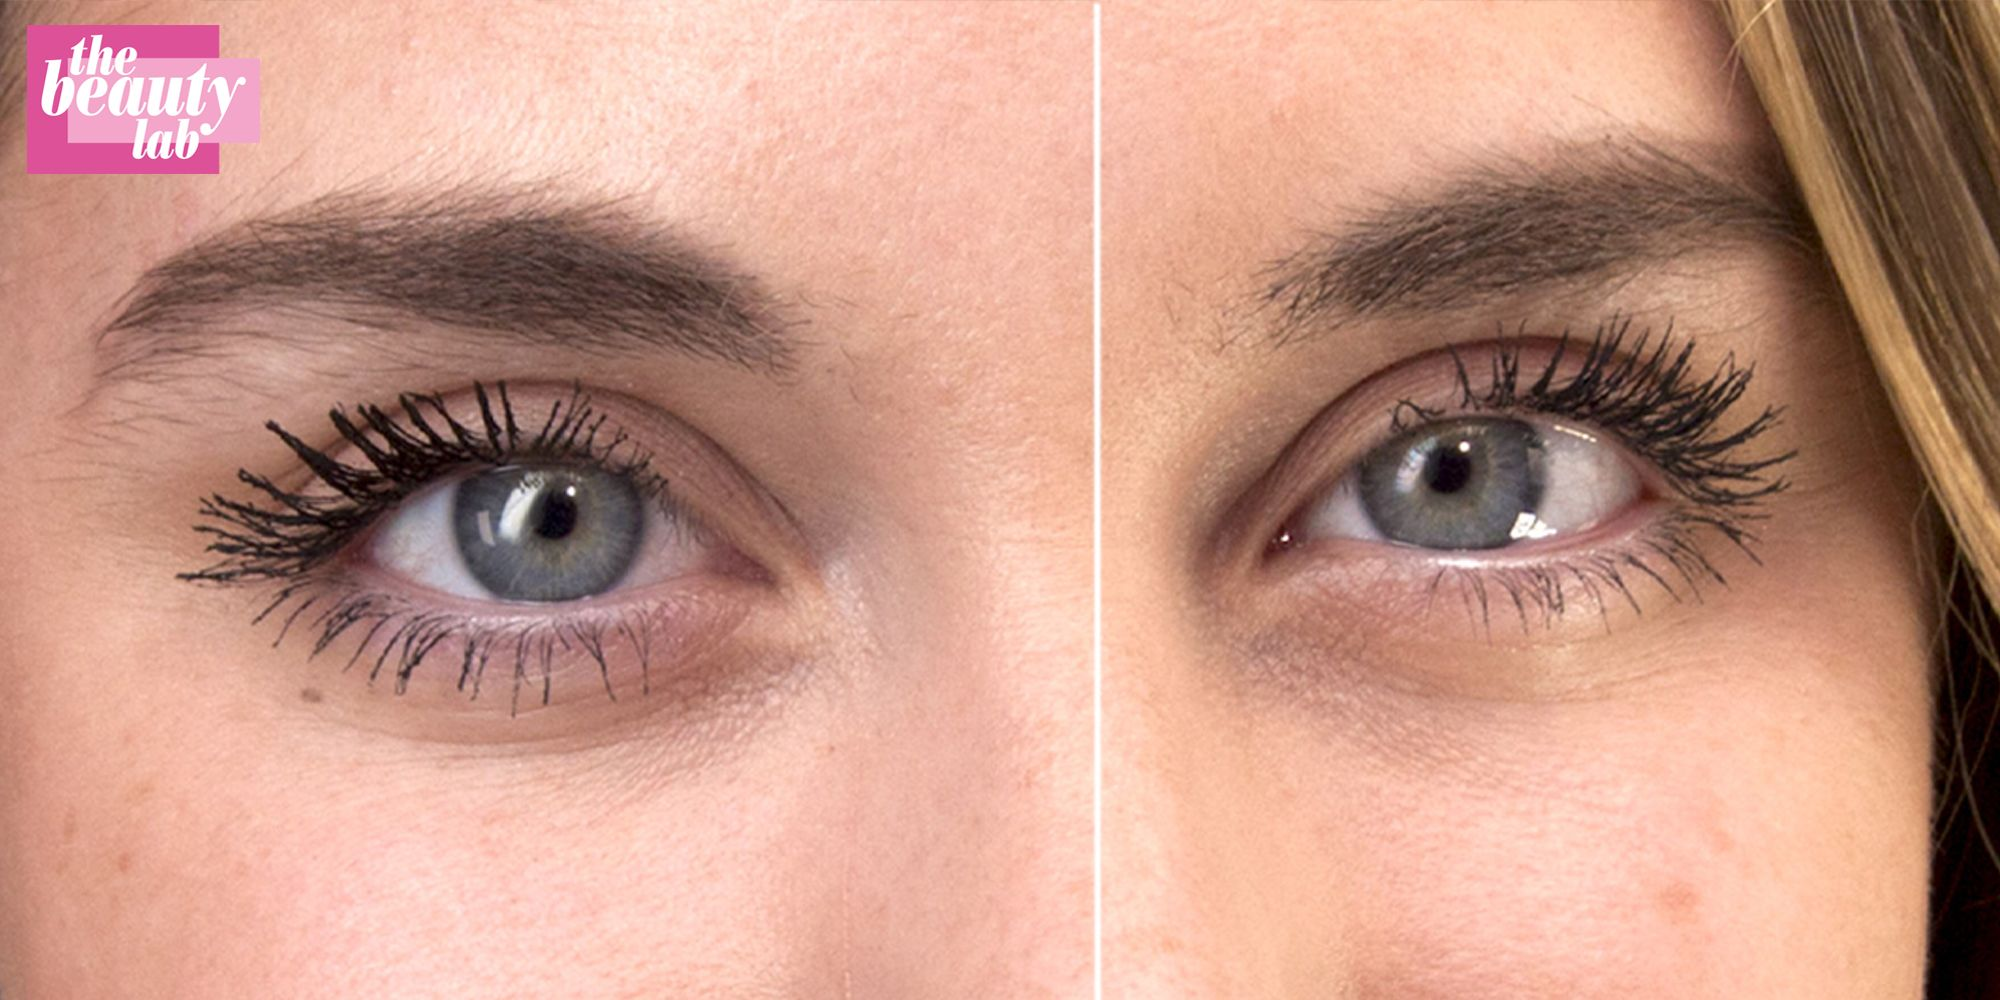 Mascara Primer Do Mascara Primers Really Work We Put Four To The Test On Camera